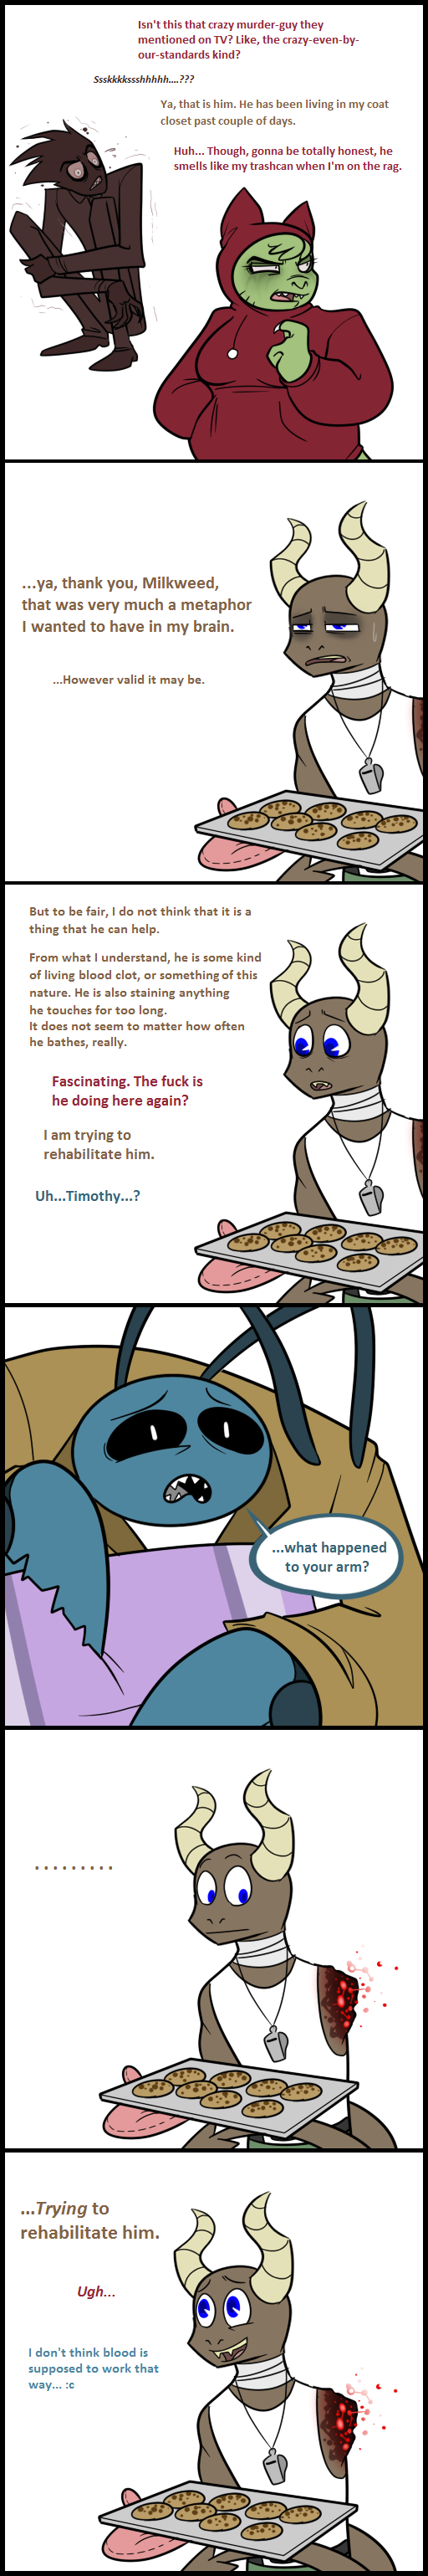 TGf MiniComic - Cookies by MindofGemini